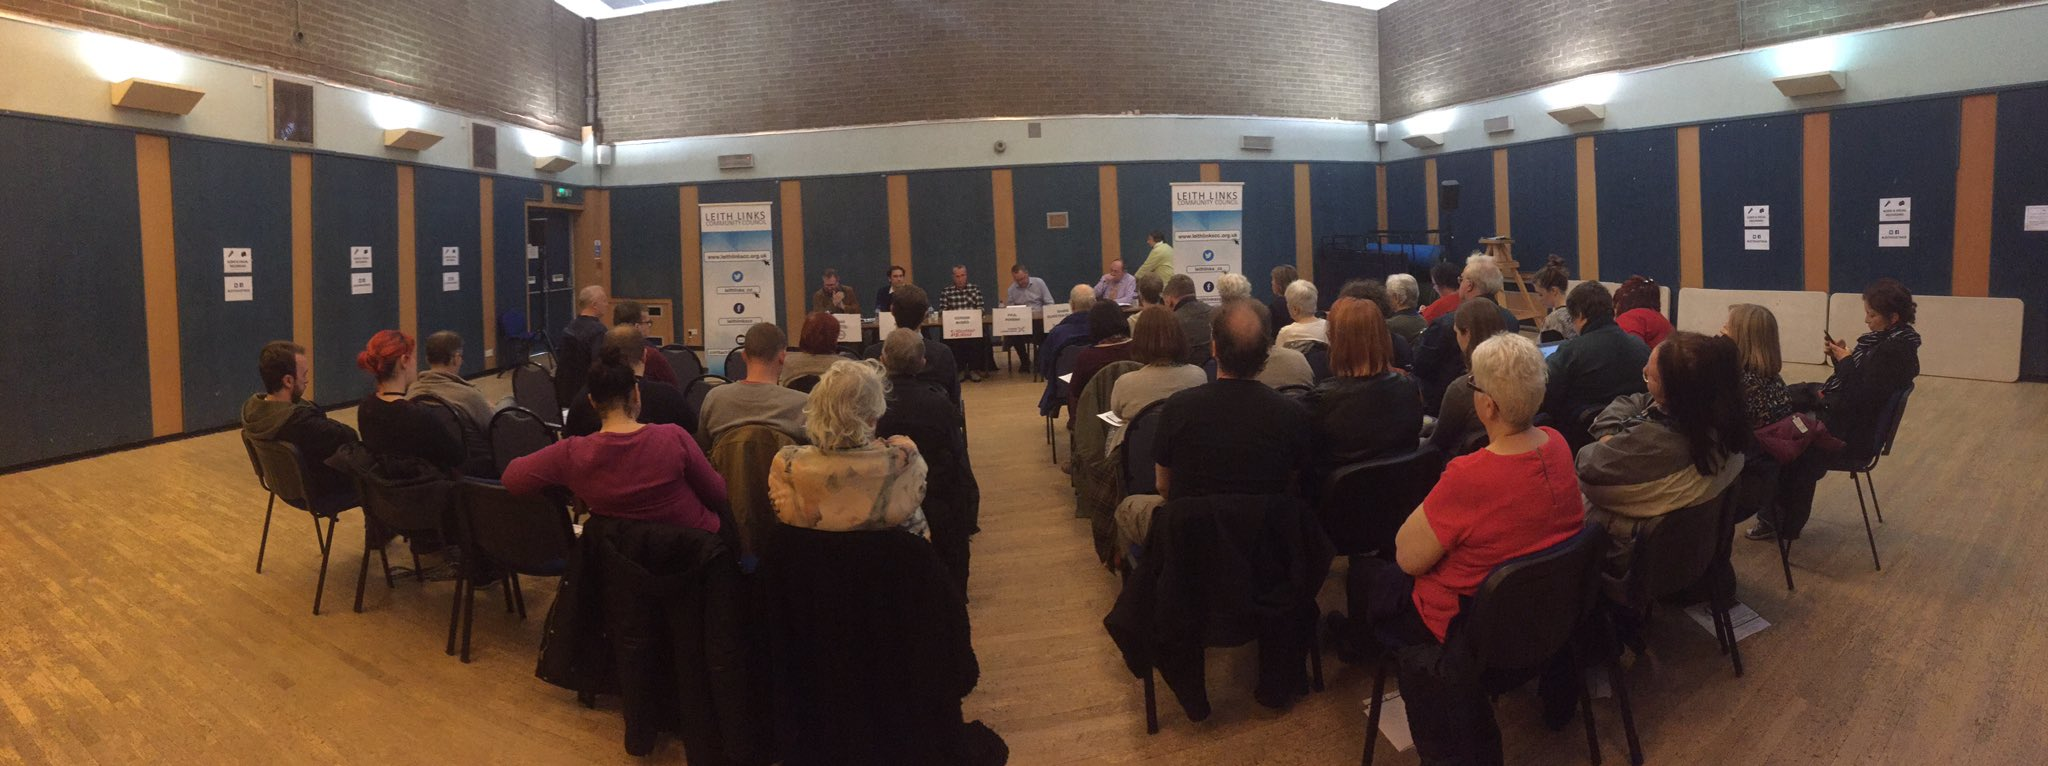 33 members of our community at our hustings tonight. #LeithHustings #Leith https://t.co/LSn2F02vEz